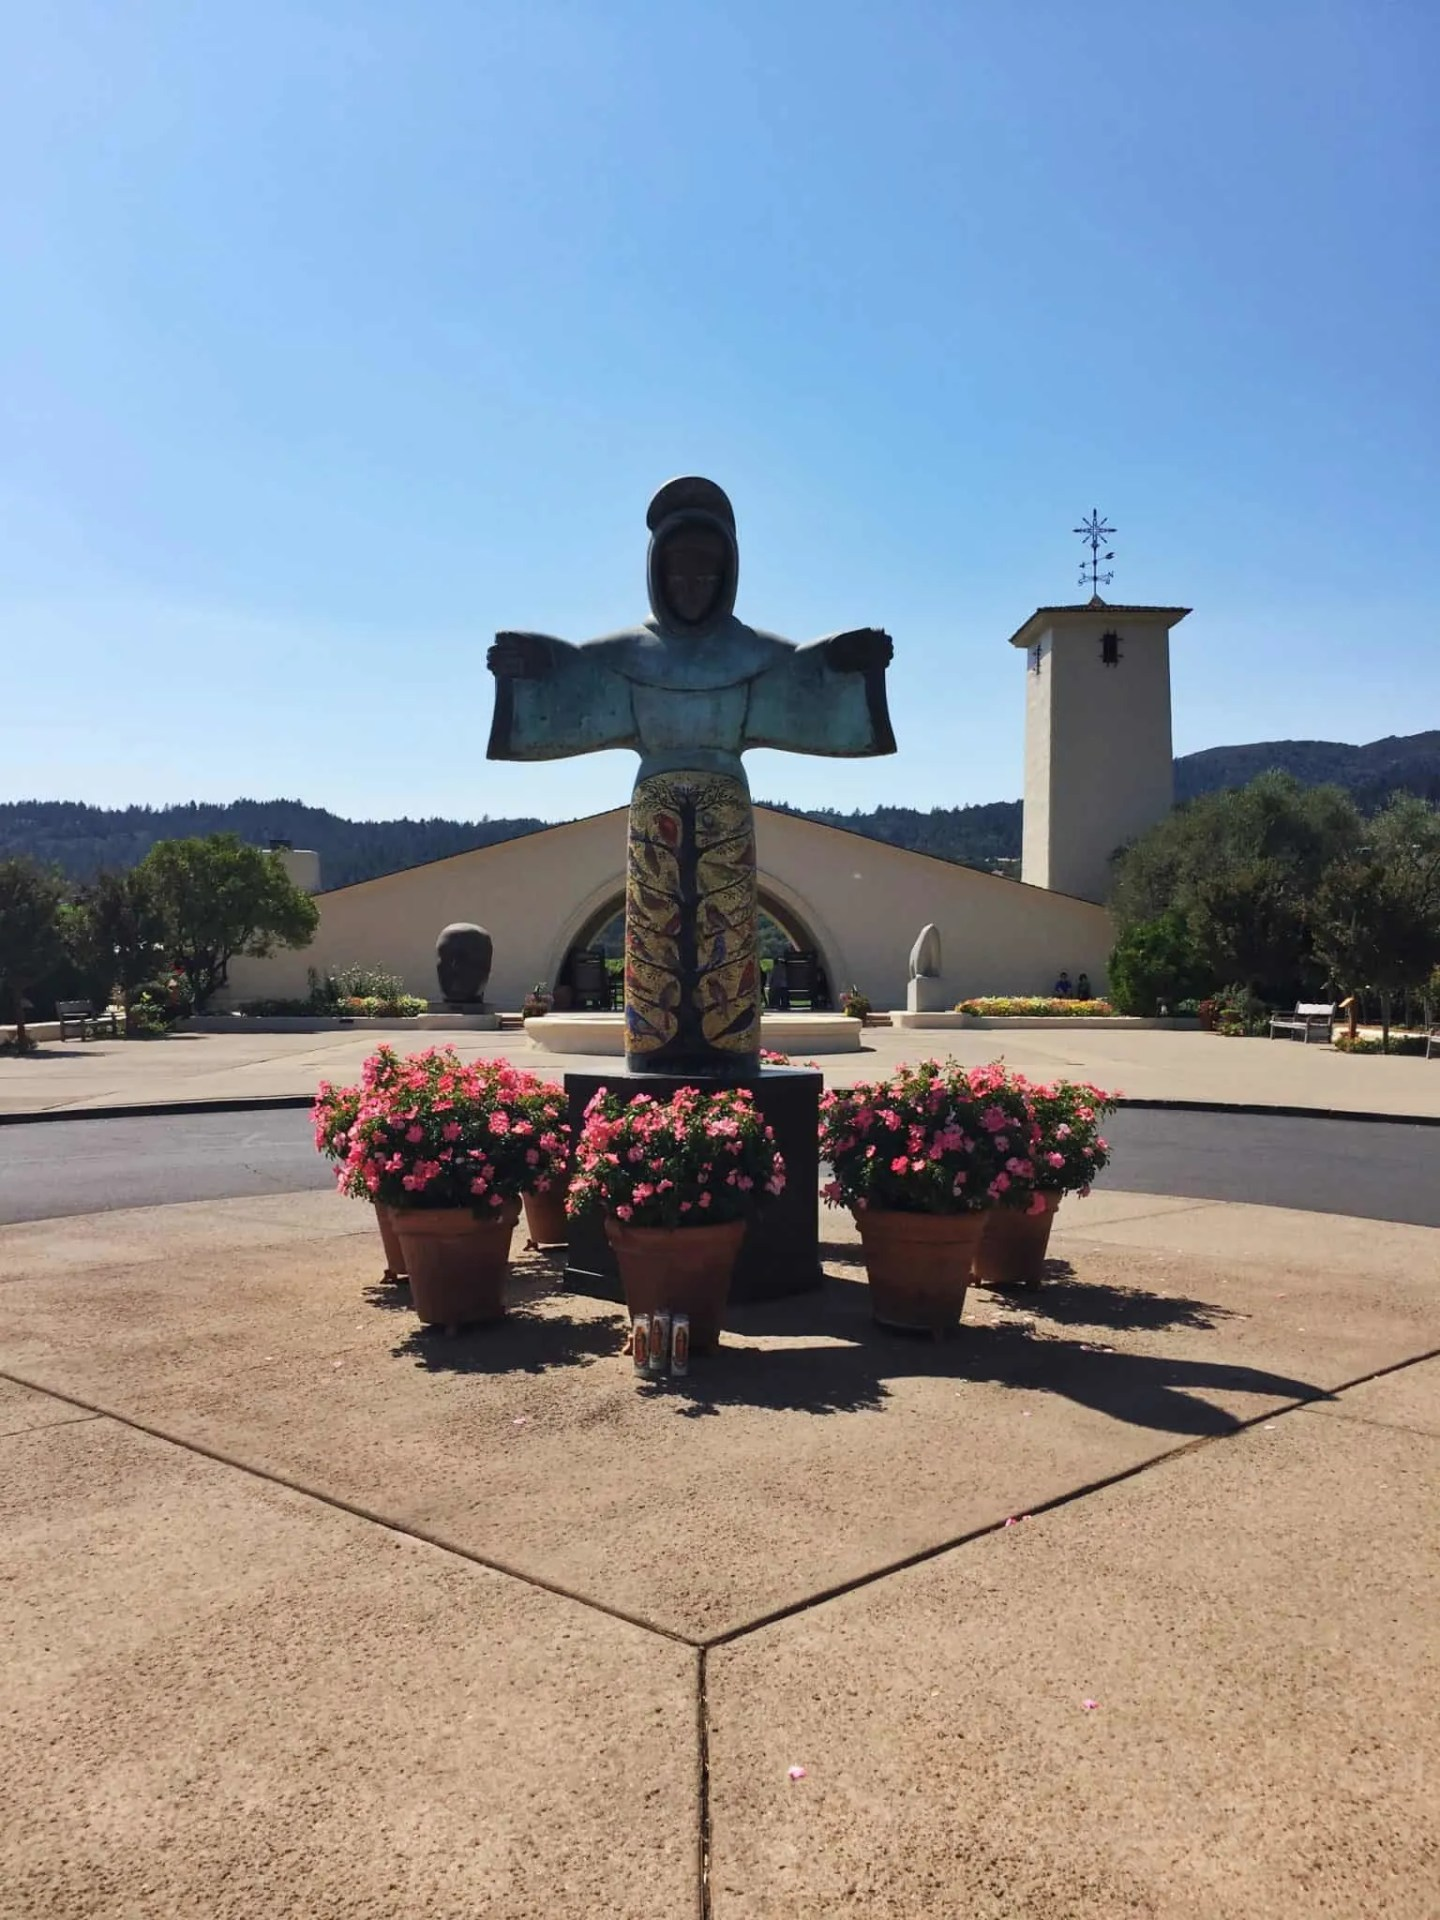 Our Visit to Robert Mondavi Winery